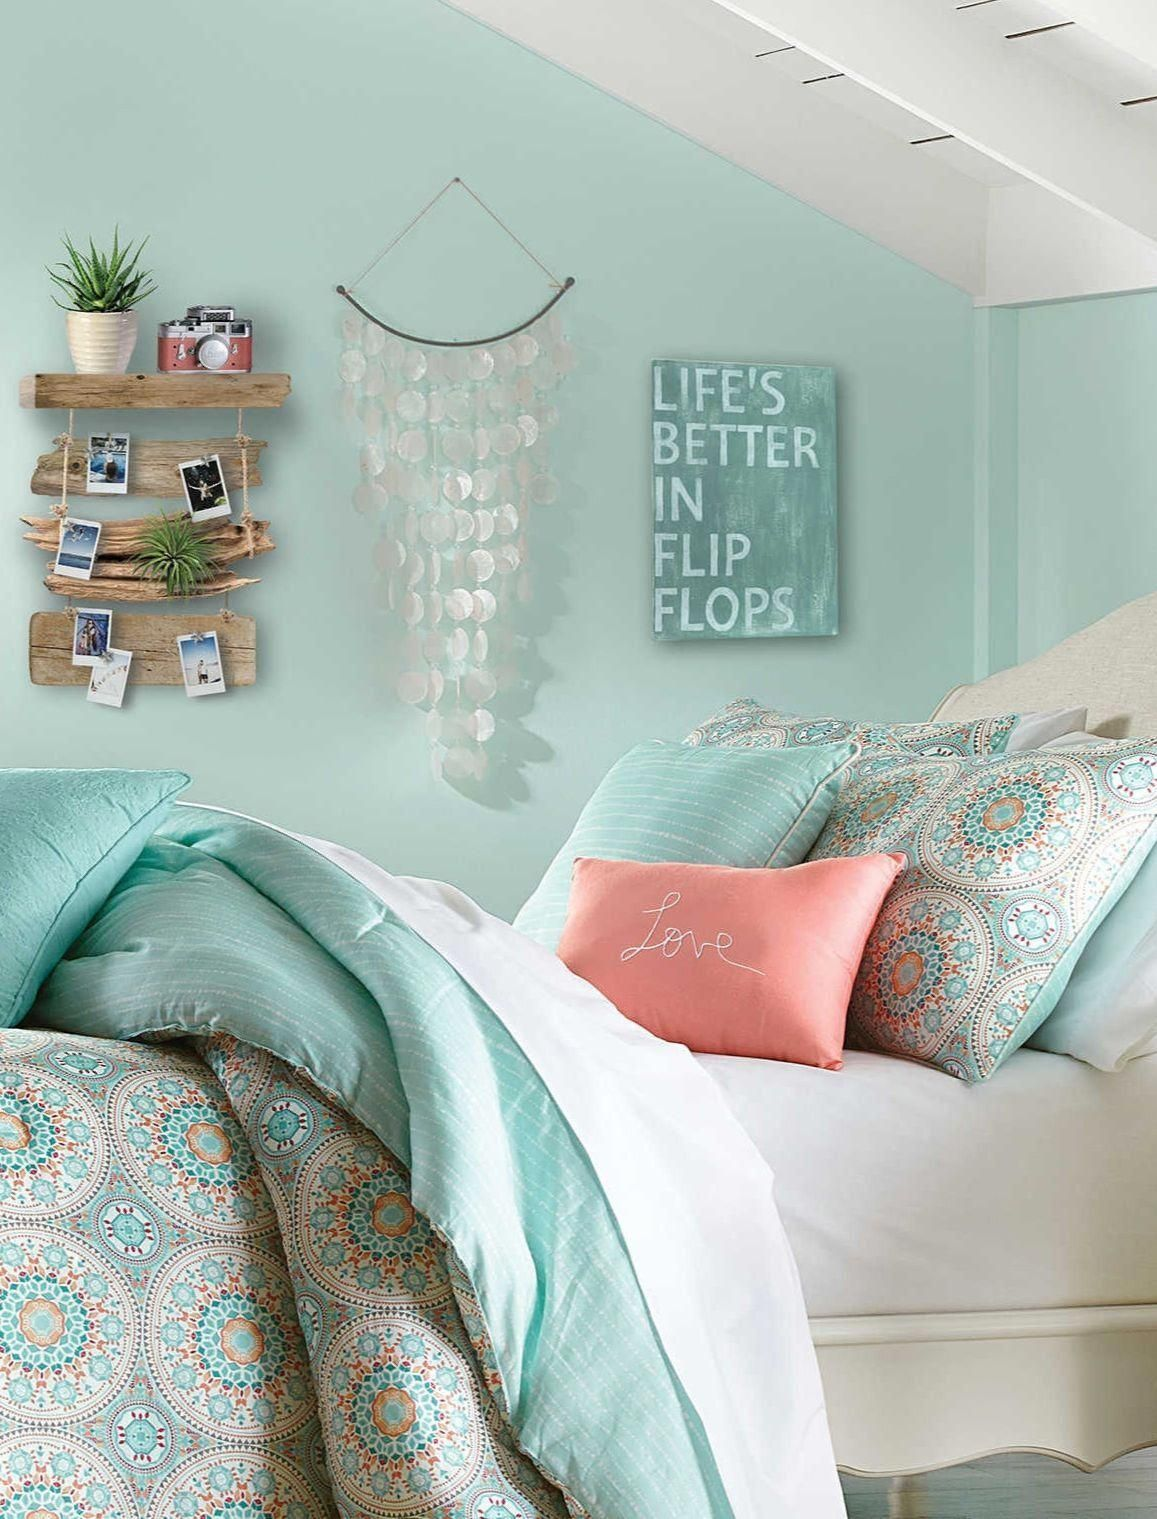 How To Choose The Right Bed Headboard In 2020 With Images